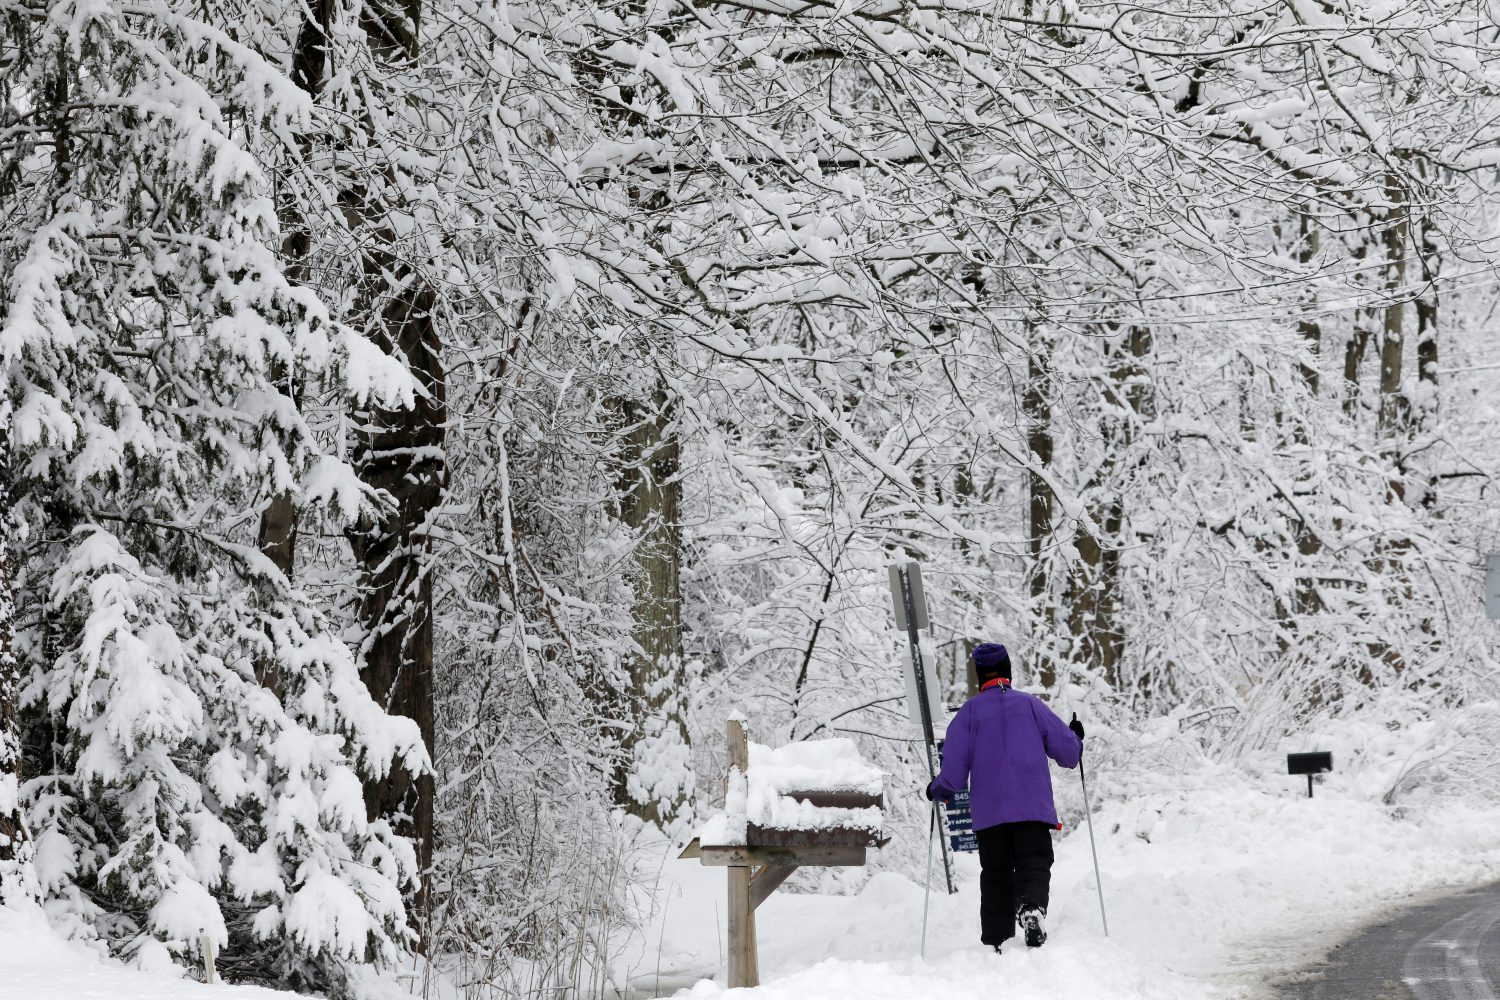 A woman makes her way through the snow on cross country skis during a winter storm in Pallisades, New York March 4, 2019. REUTERS/Mike Segar